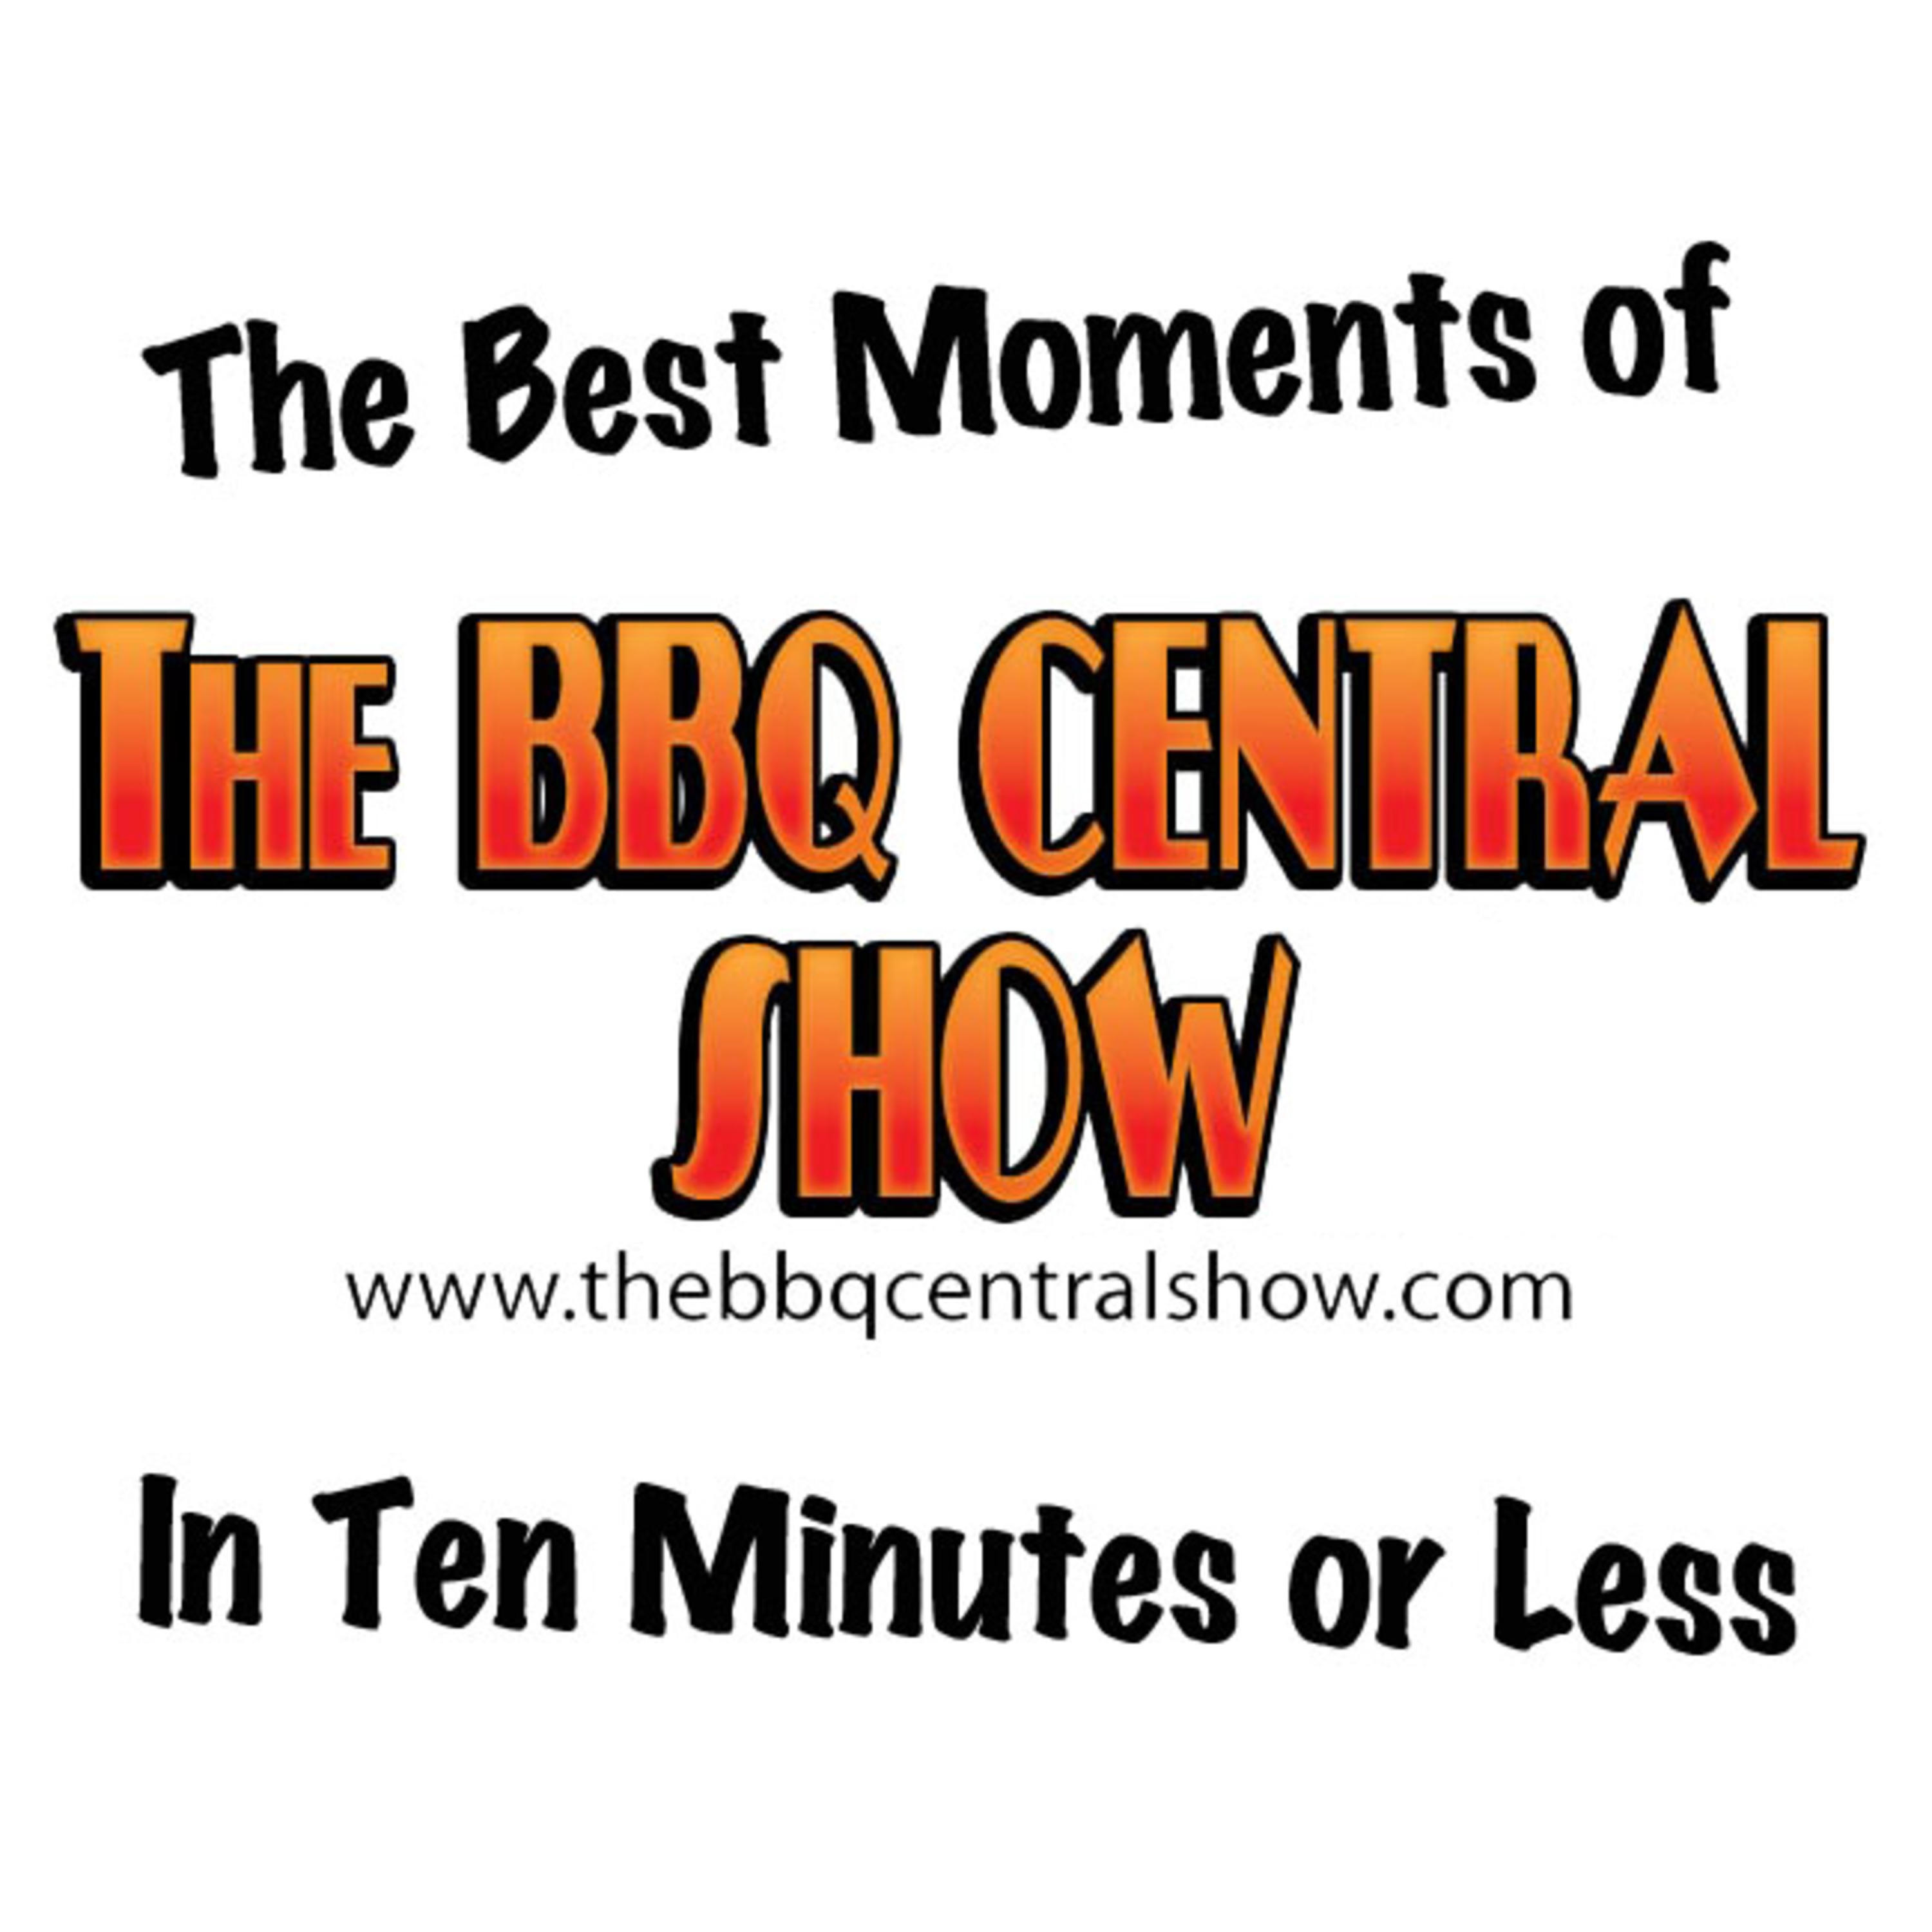 The Best Moments of TH BBQ Central Show in Ten Minutes or Less